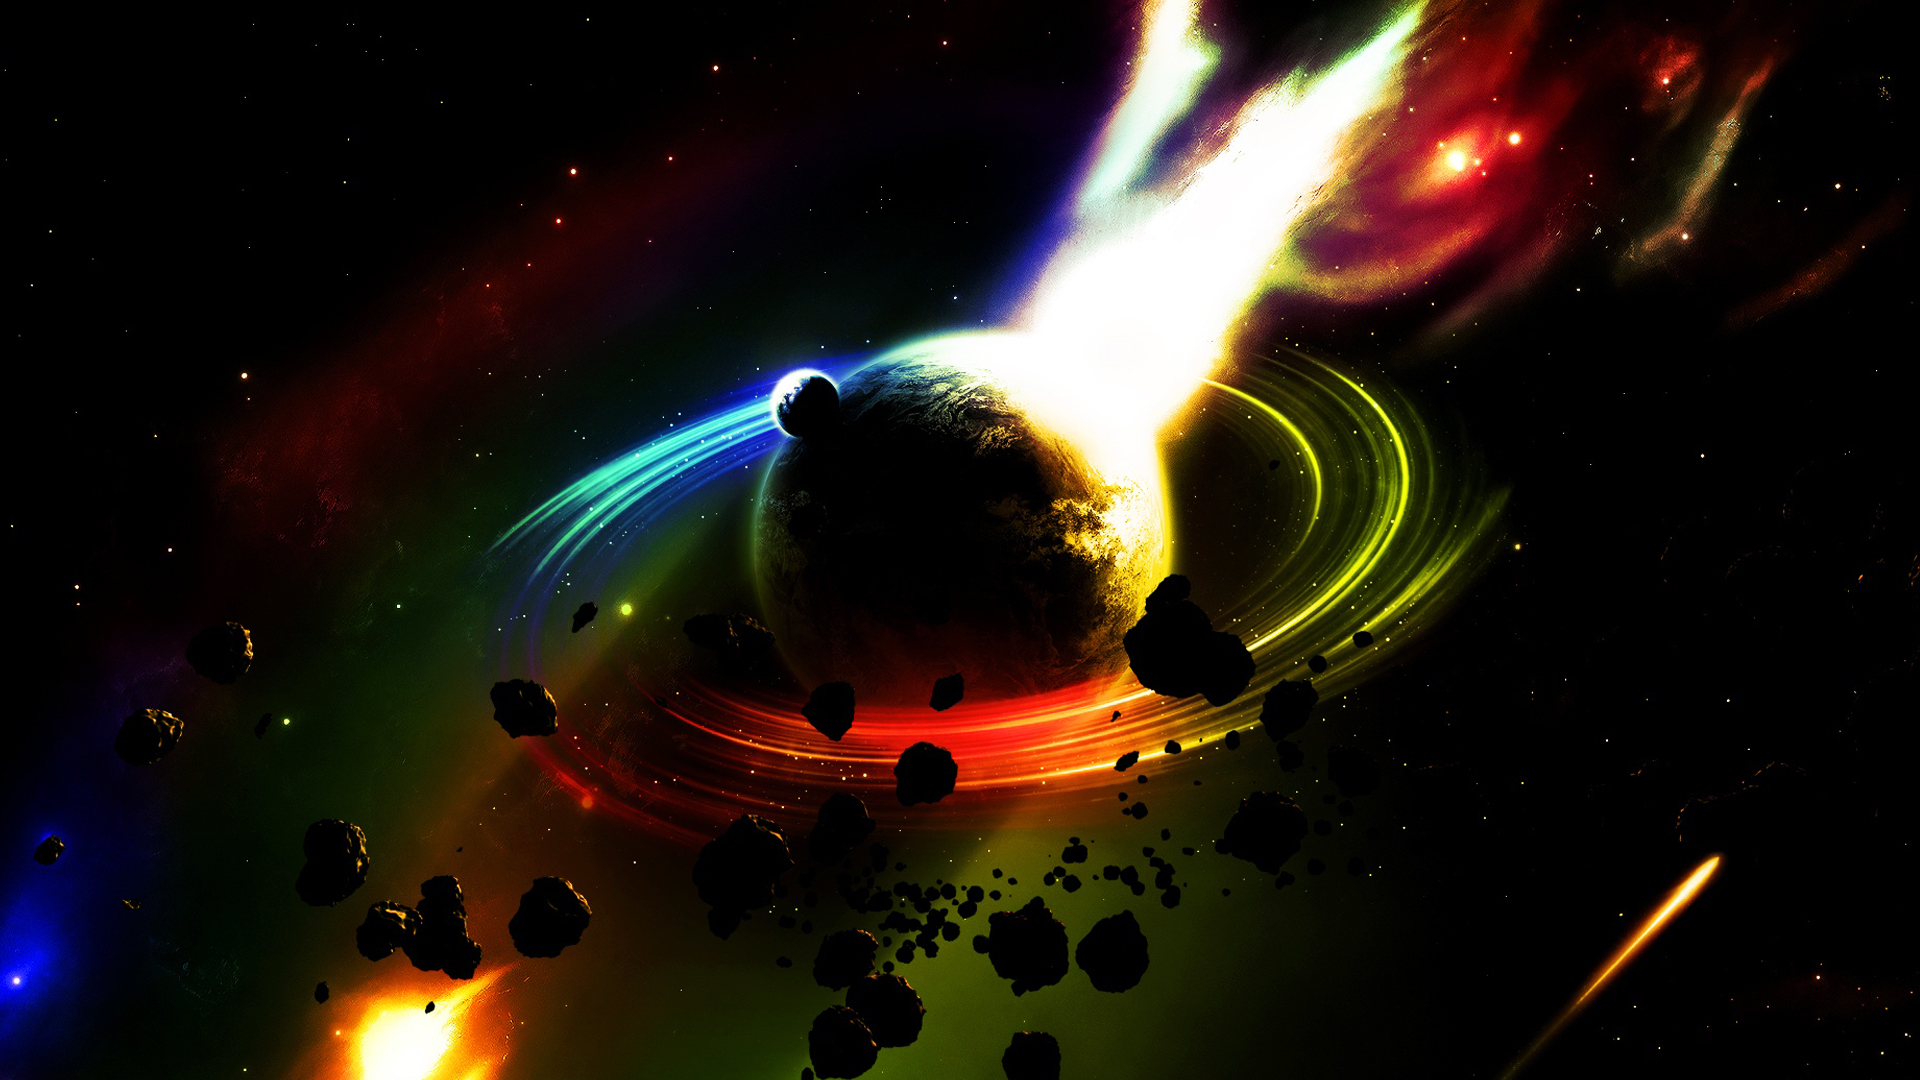 Space HD wallpaper 1920x1080 38   hebusorg   High Definition 1920x1080